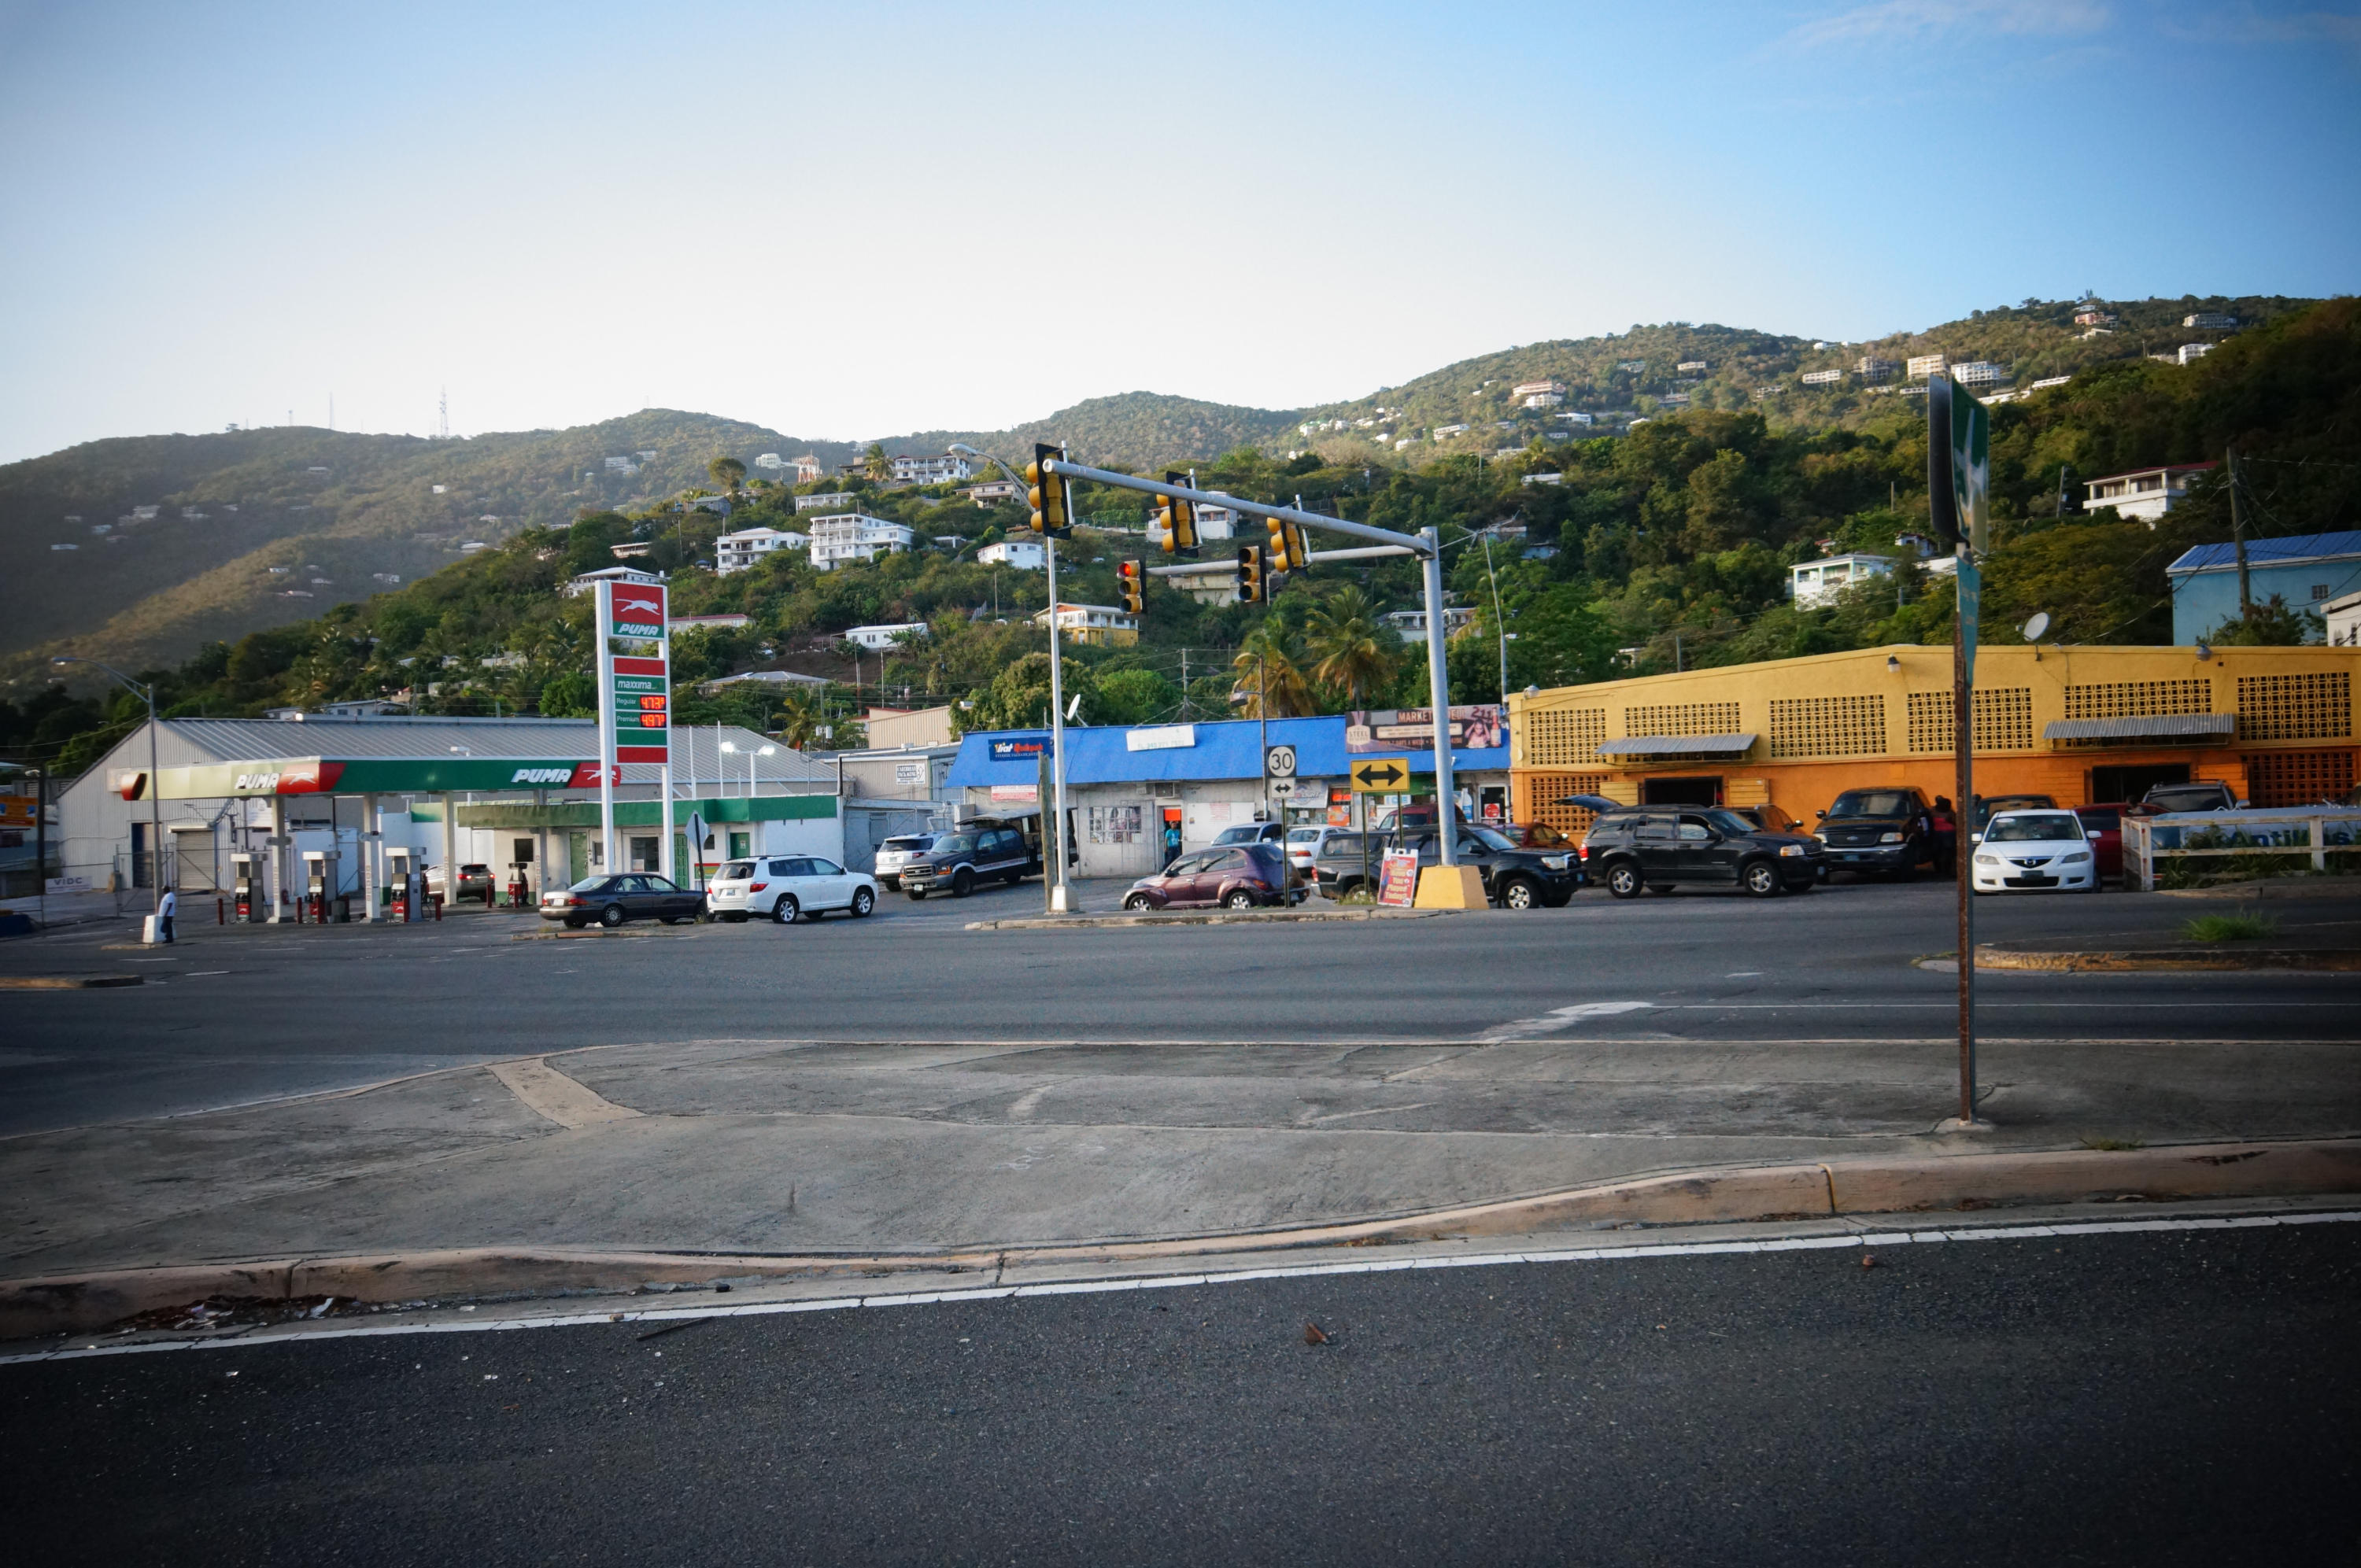 Commercial for Sale at 8,9,9A,16A Contant SS 8,9,9A,16A Contant SS St Thomas, Virgin Islands 00802 United States Virgin Islands